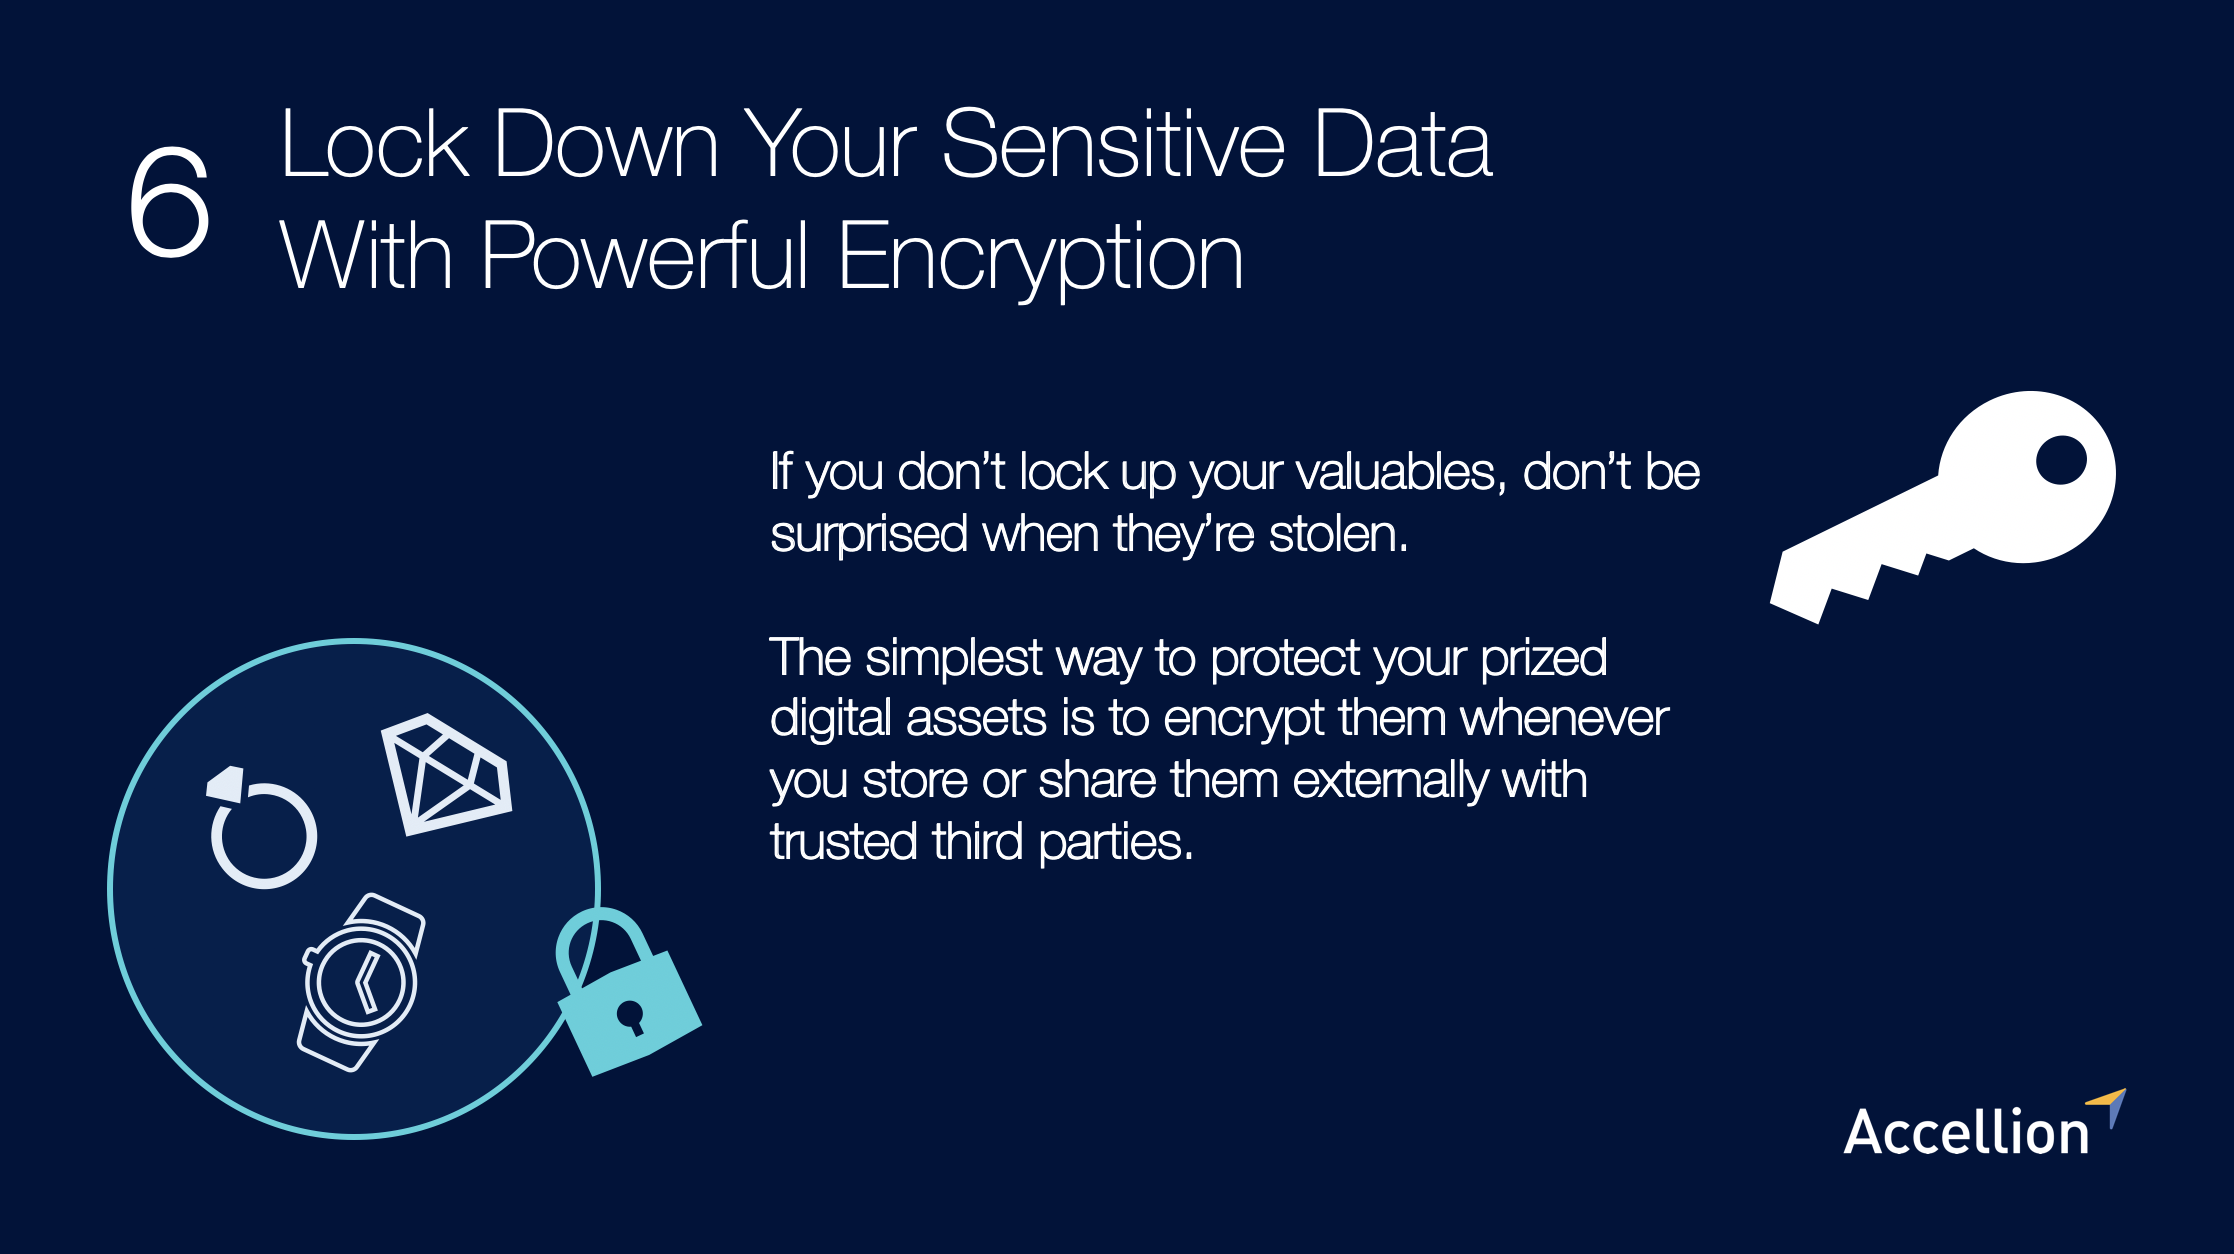 Lock Down Your Sensitive Content With Encryption